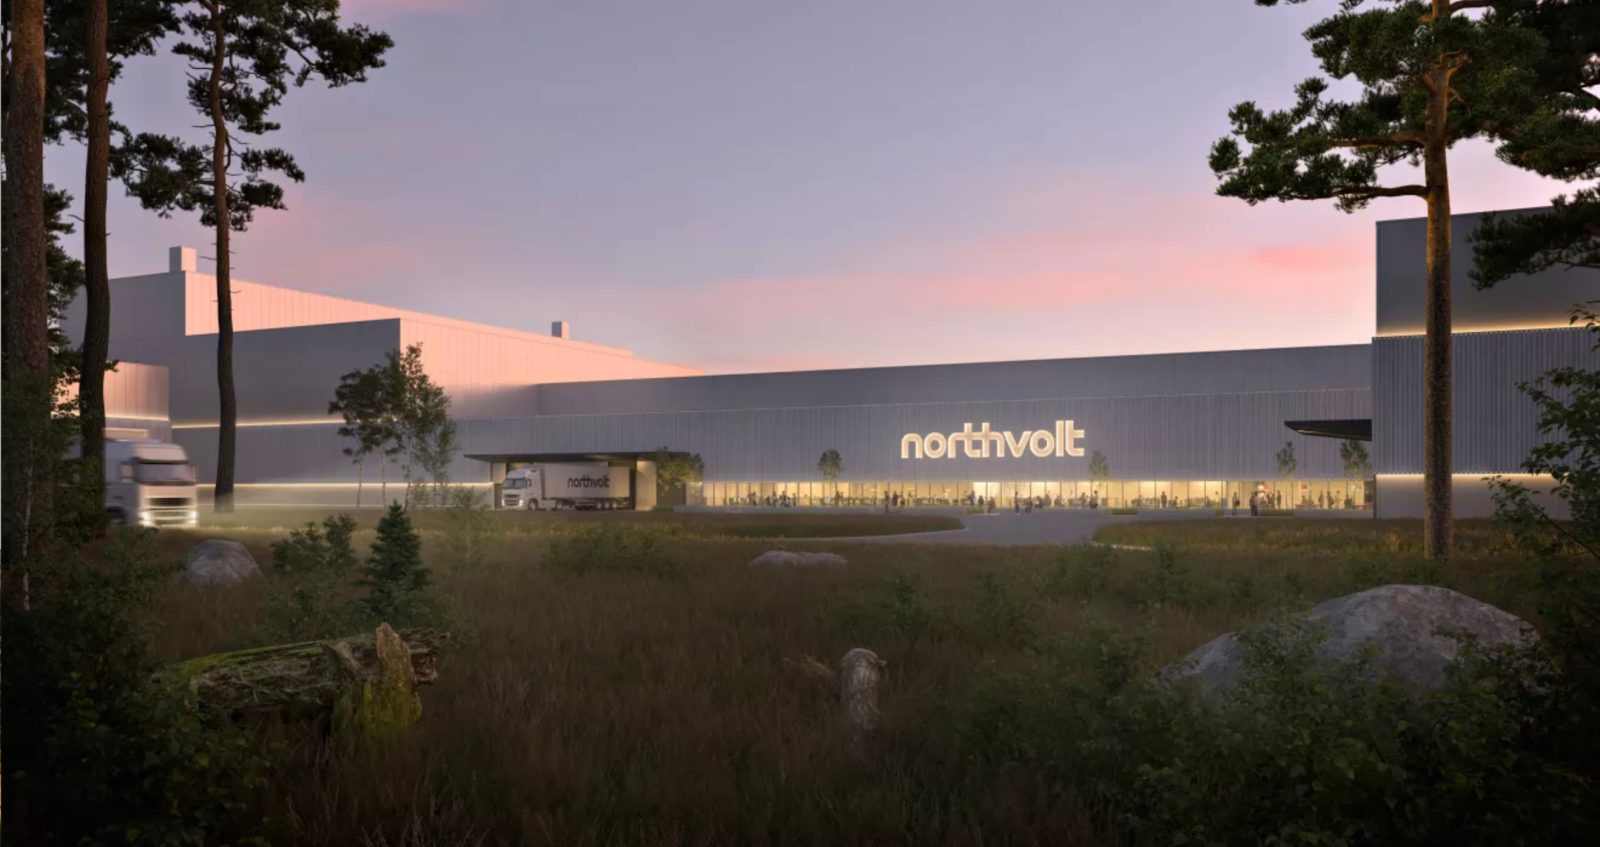 Northvolt starts construction on first phase of its planned